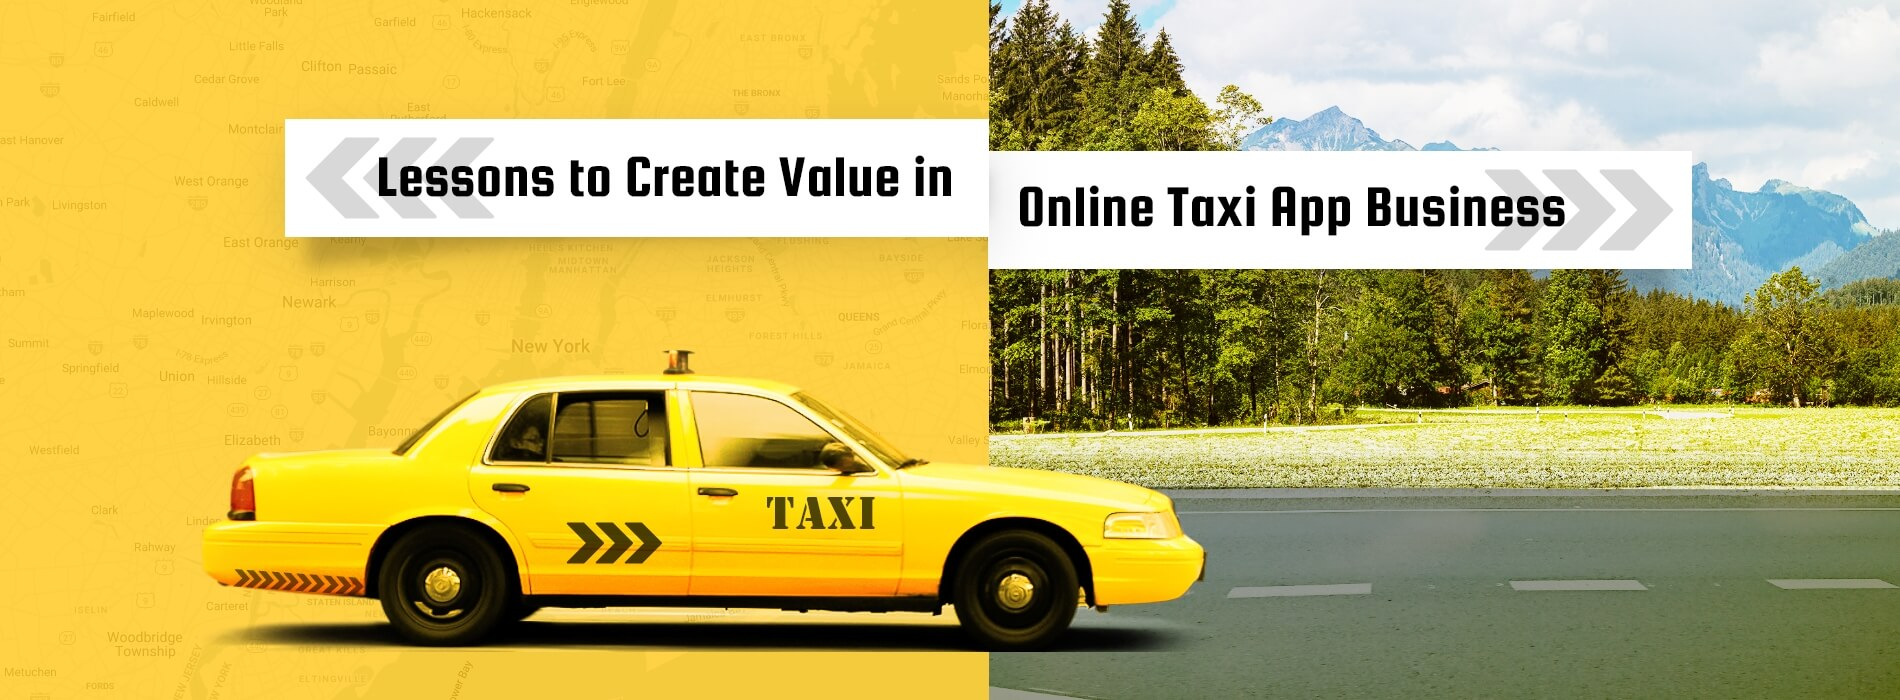 What Makes On-Demand Taxi Business A Unicorn?